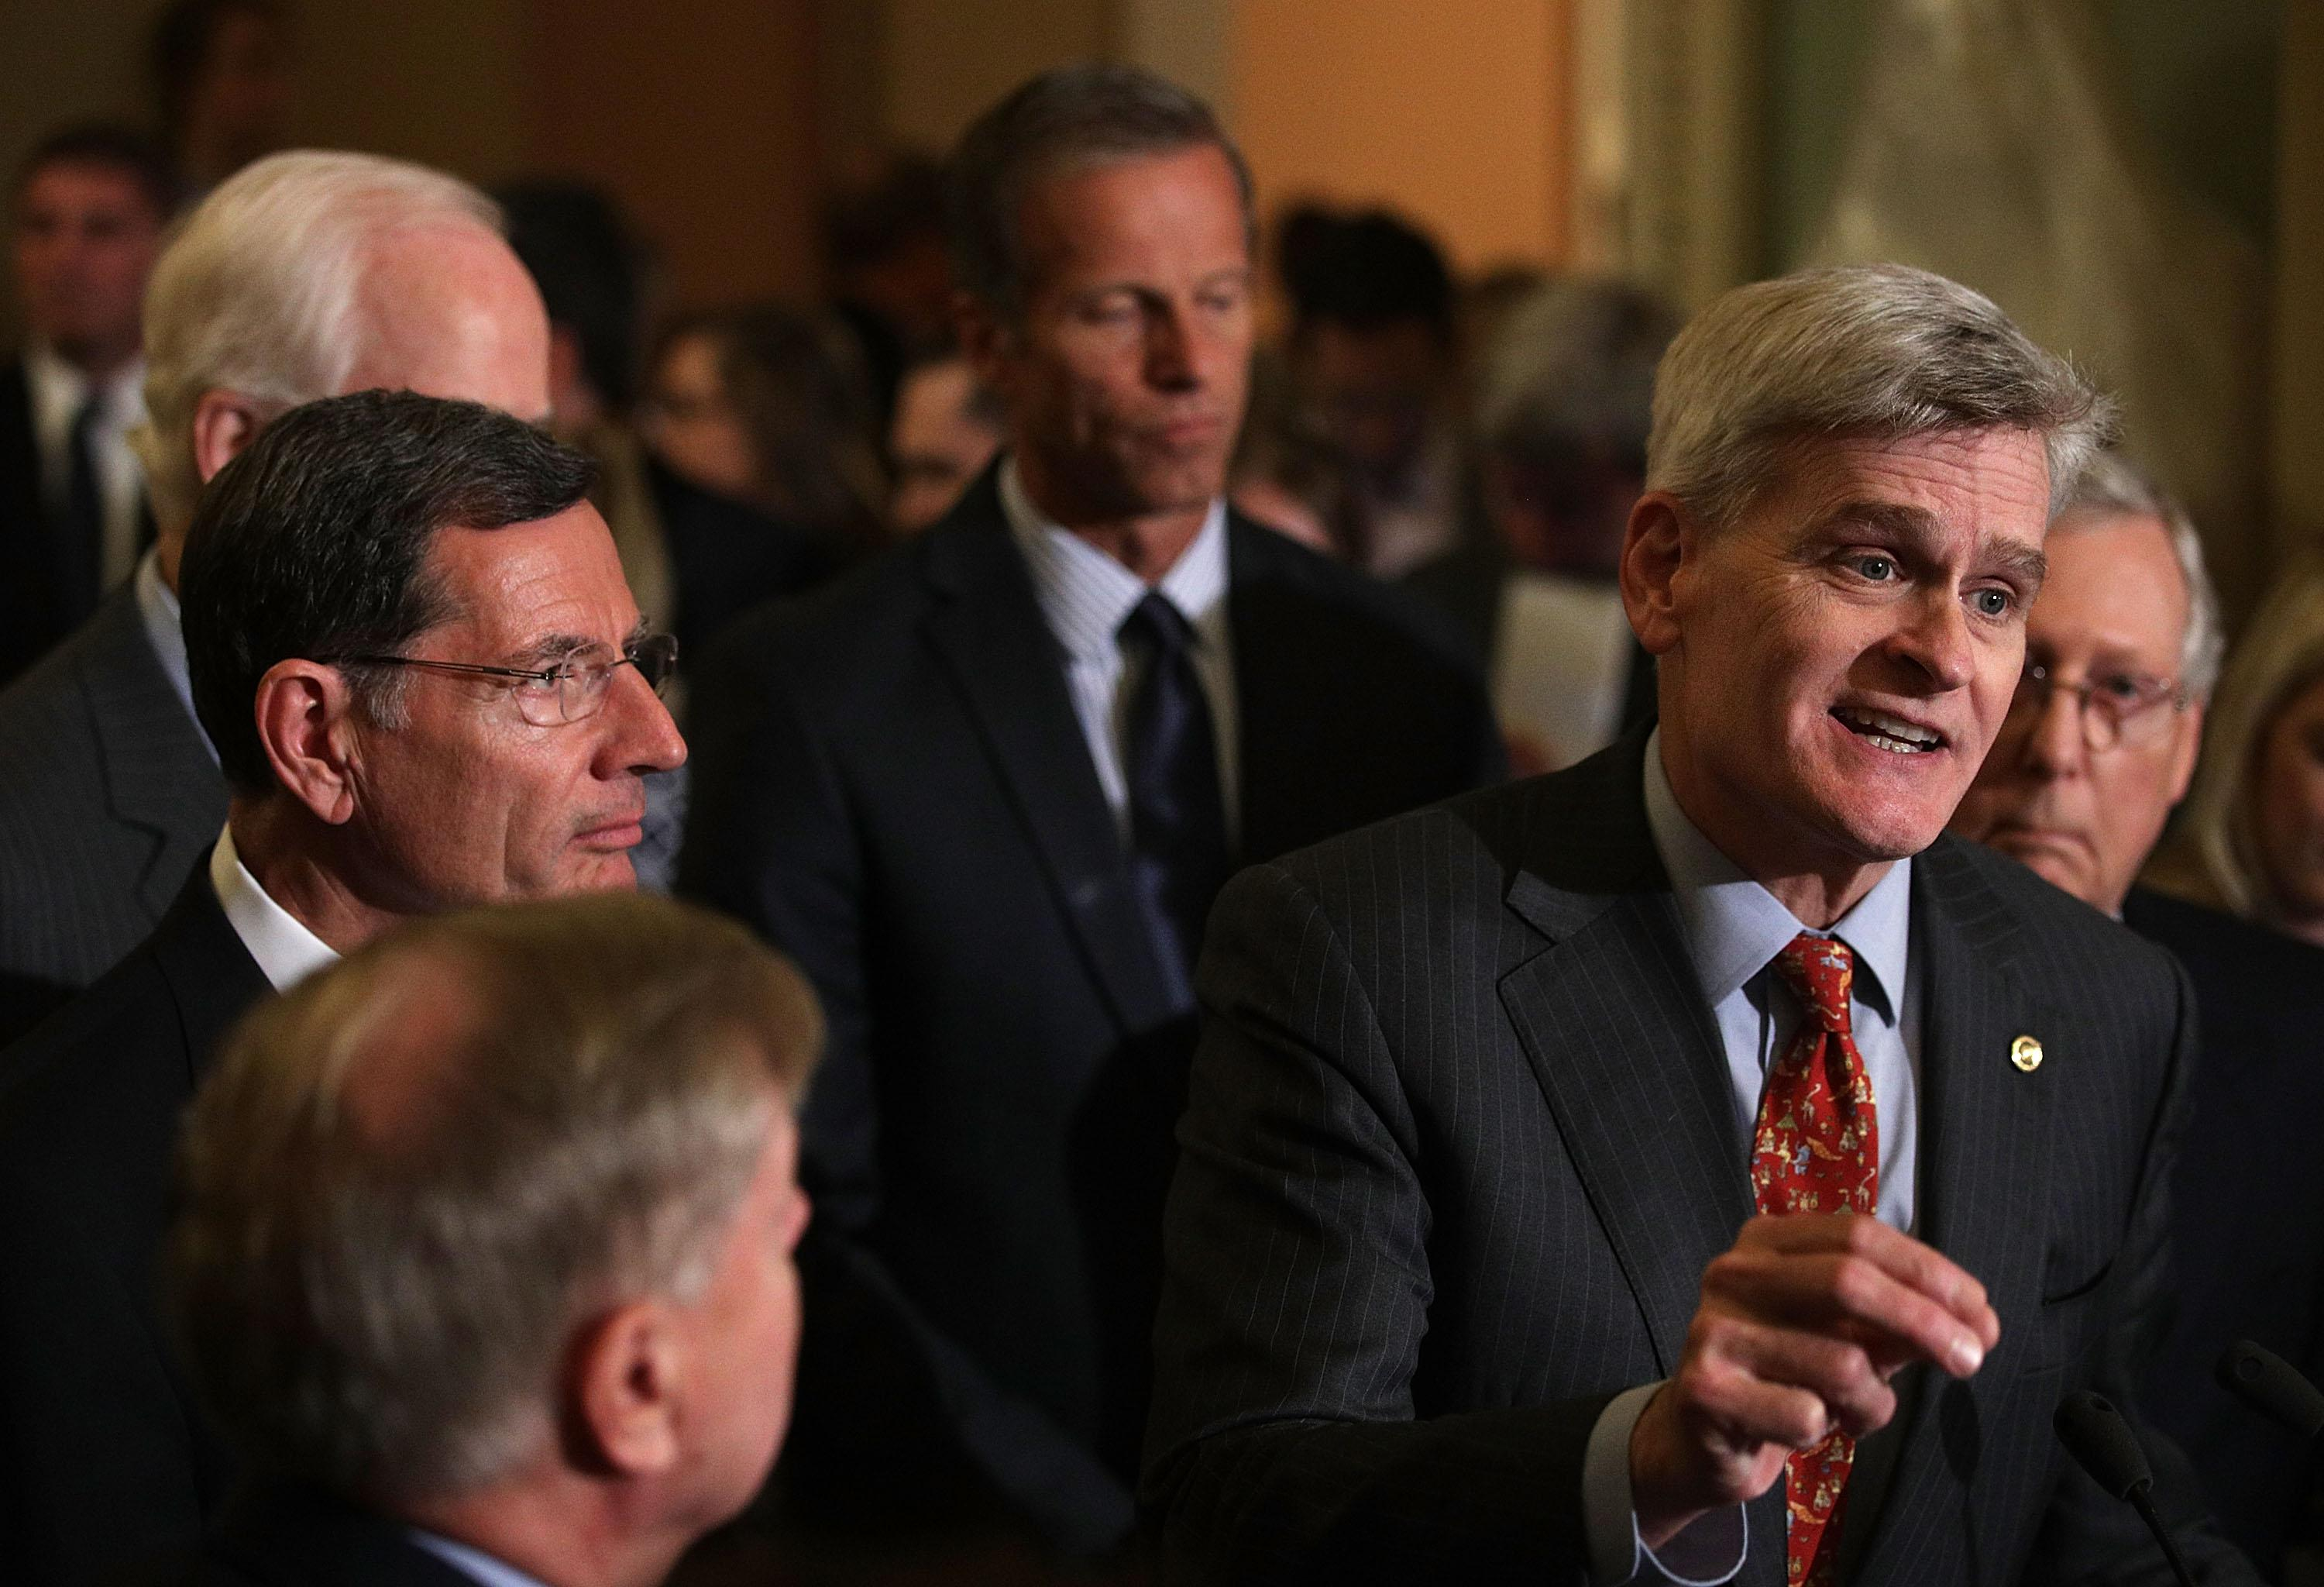 WASHINGTON, DC - SEPTEMBER 19:  U.S. Sen. Bill Cassidy (R-LA) (2nd R) speaks as (L-R) Sen. Lindsey Graham (R-SC), Sen. John Barrasso (R-WY), Sen. John Thune (R-SD), and Senate Majority Leader Sen. Mitch McConnell (R-KY) listen during a news briefing after the weekly Senate Republican policy luncheon at the Capitol September 19, 2017 in Washington, DC. Senate Republican held a weekly policy luncheon to discuss GOP agenda.  (Photo by Alex Wong/Getty Images)